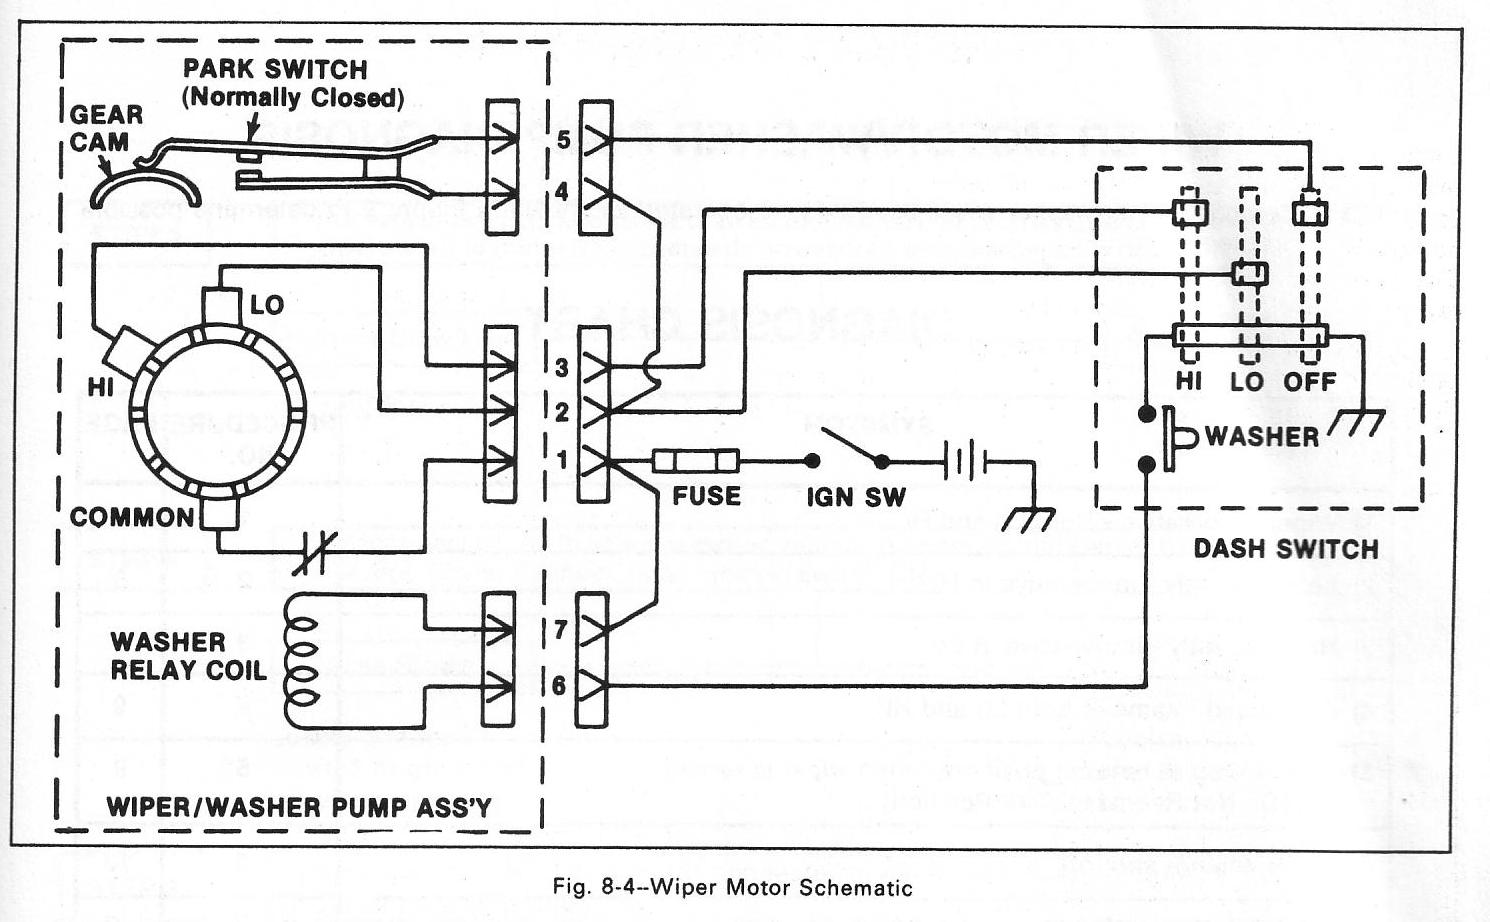 Incredible 1973 Ford Capri Wiring Diagram Get Free Image About Wiring Diagram Wiring Cloud Lukepaidewilluminateatxorg